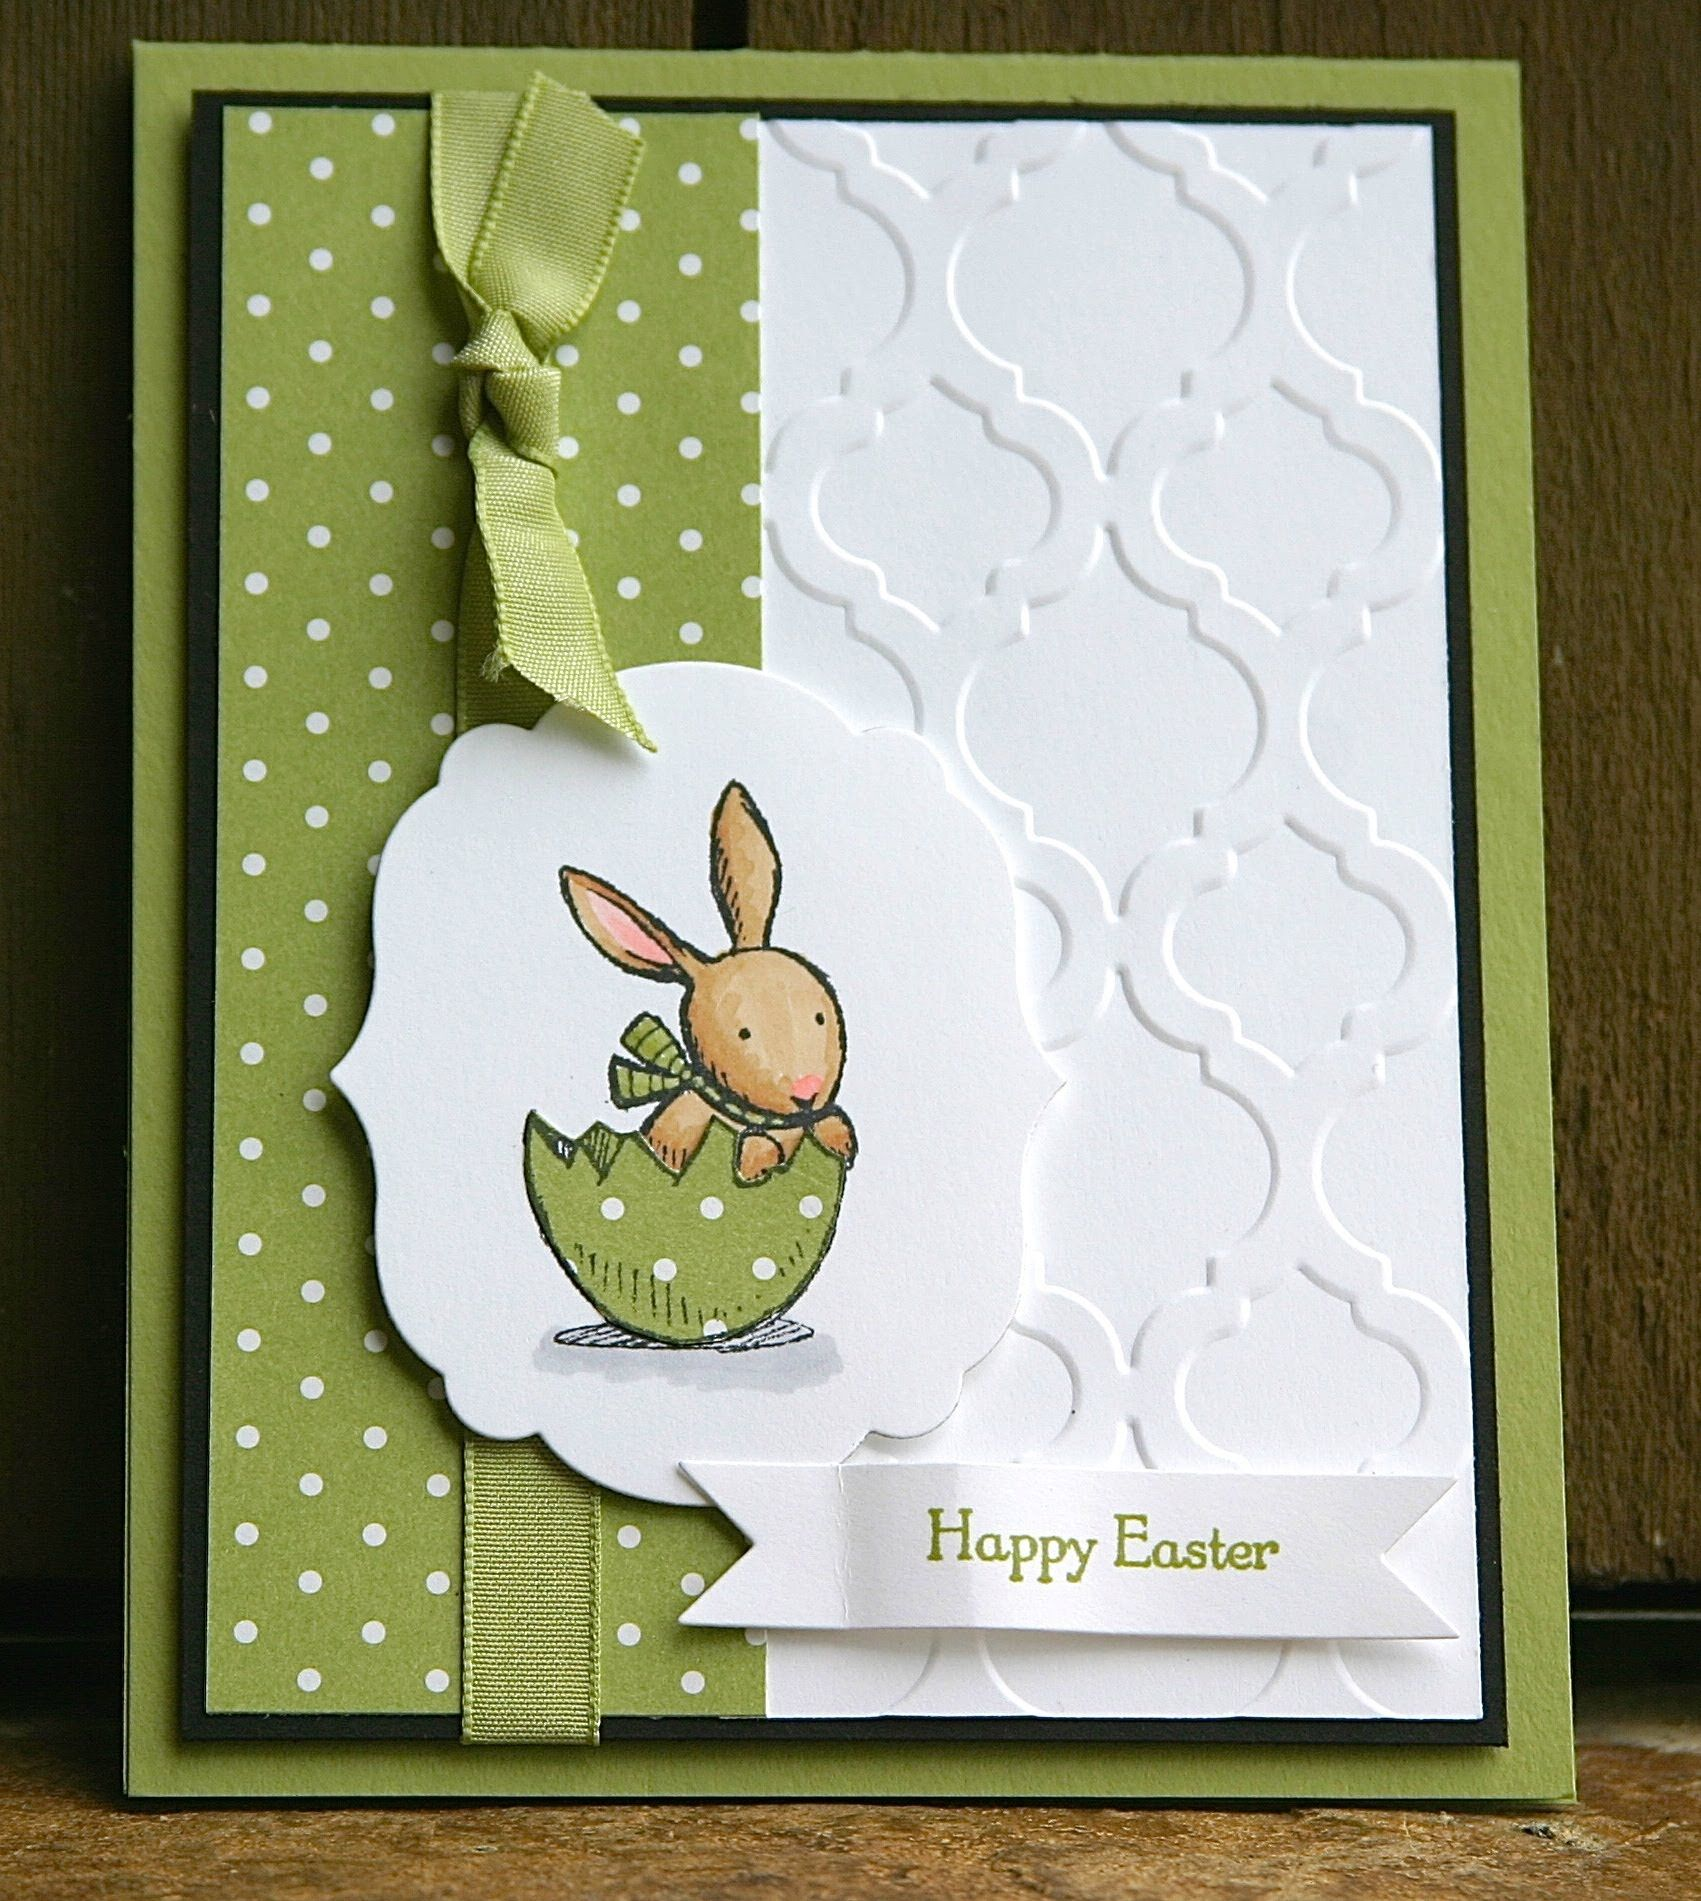 Stampin Up Everybunny Easter Card Cards Pinterest – Homemade Easter Cards